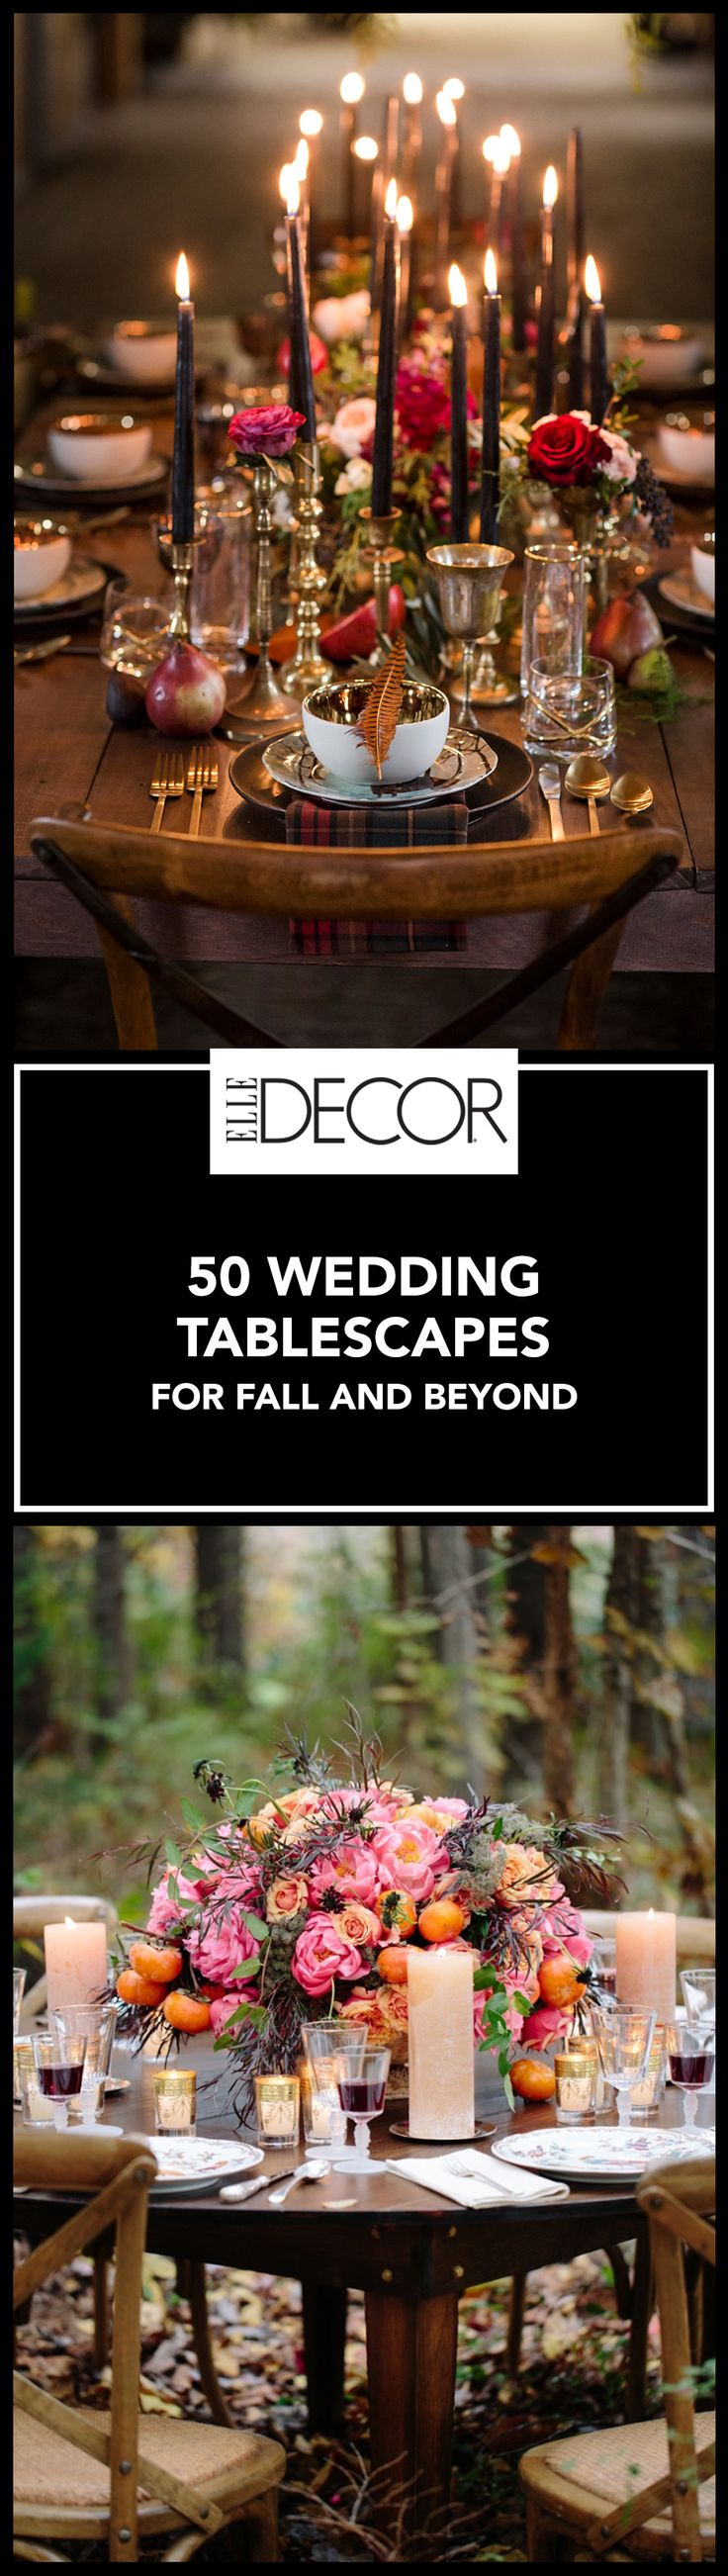 Make dinner a stylish statement on your wedding day with these stunning wedding tablescapes perfect for fall.